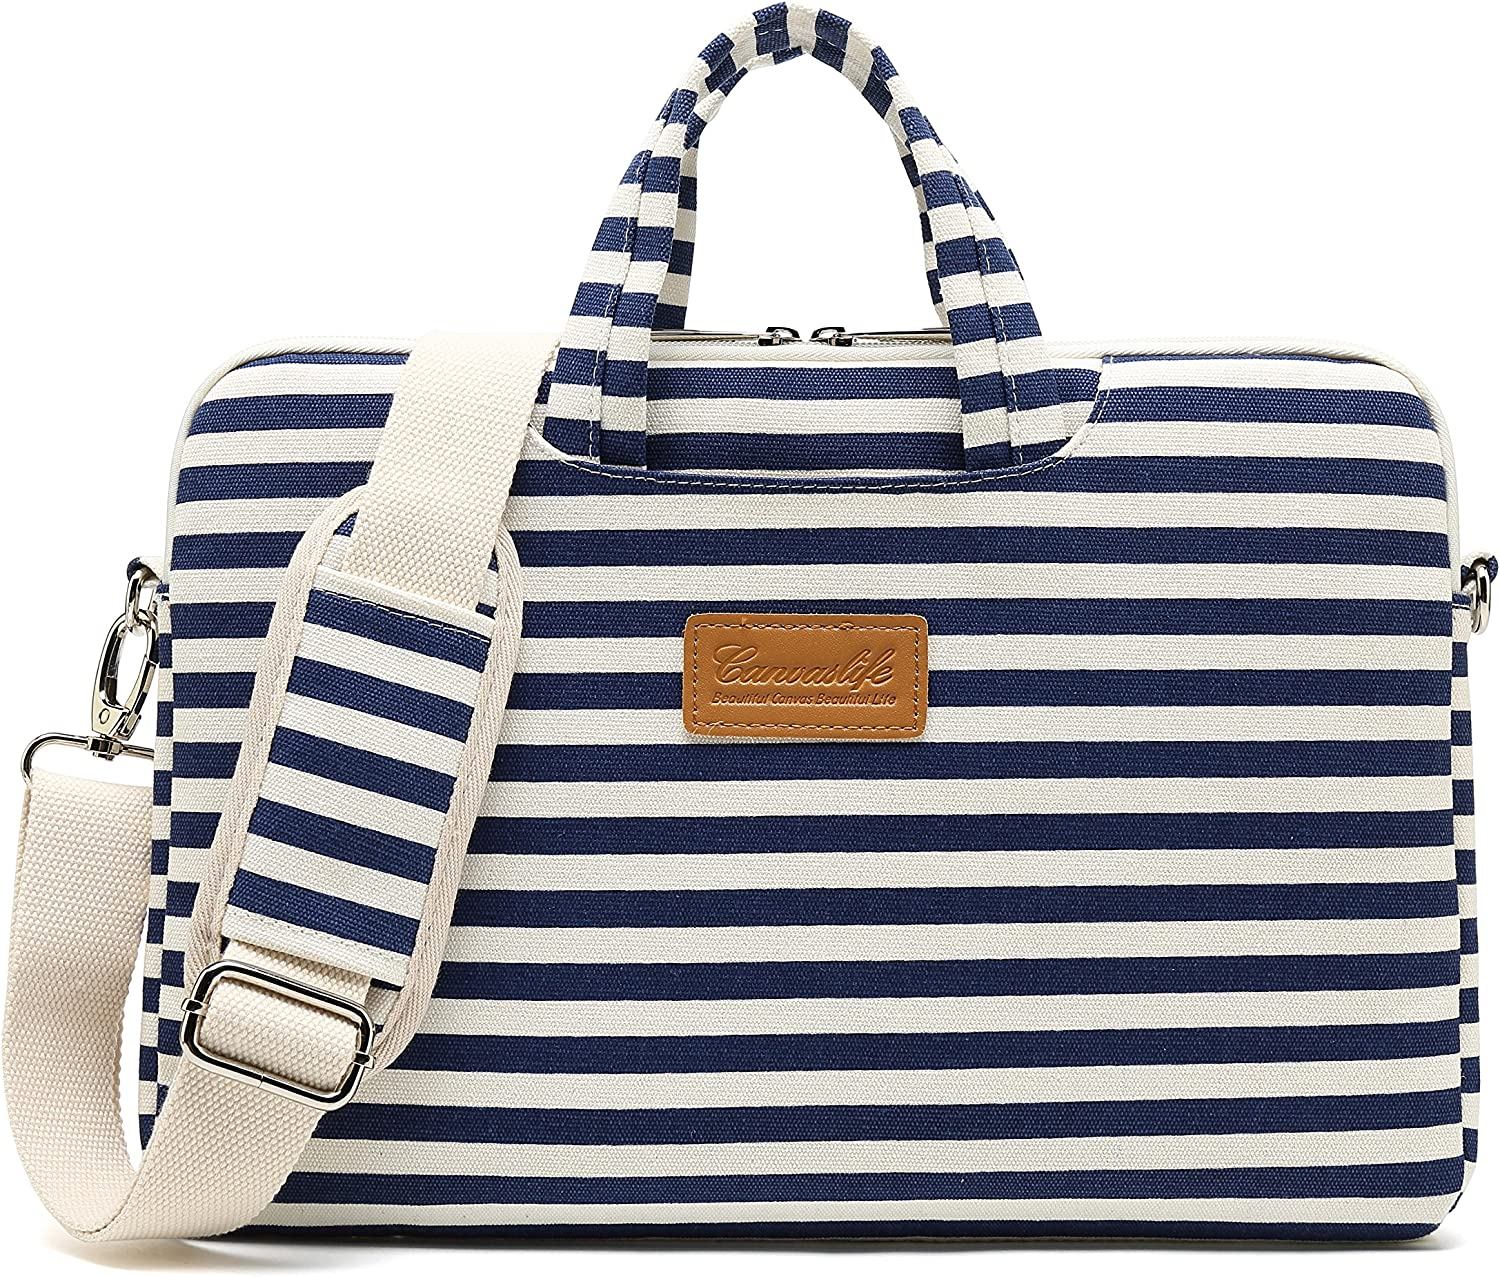 Canvaslife Breton Stripe Pattern 15 inch Waterproof Laptop Shoulder Messenger Bag Case with Rebound Bubble Protection for 14 inch-15.6 inch Laptop 15 Case Bag